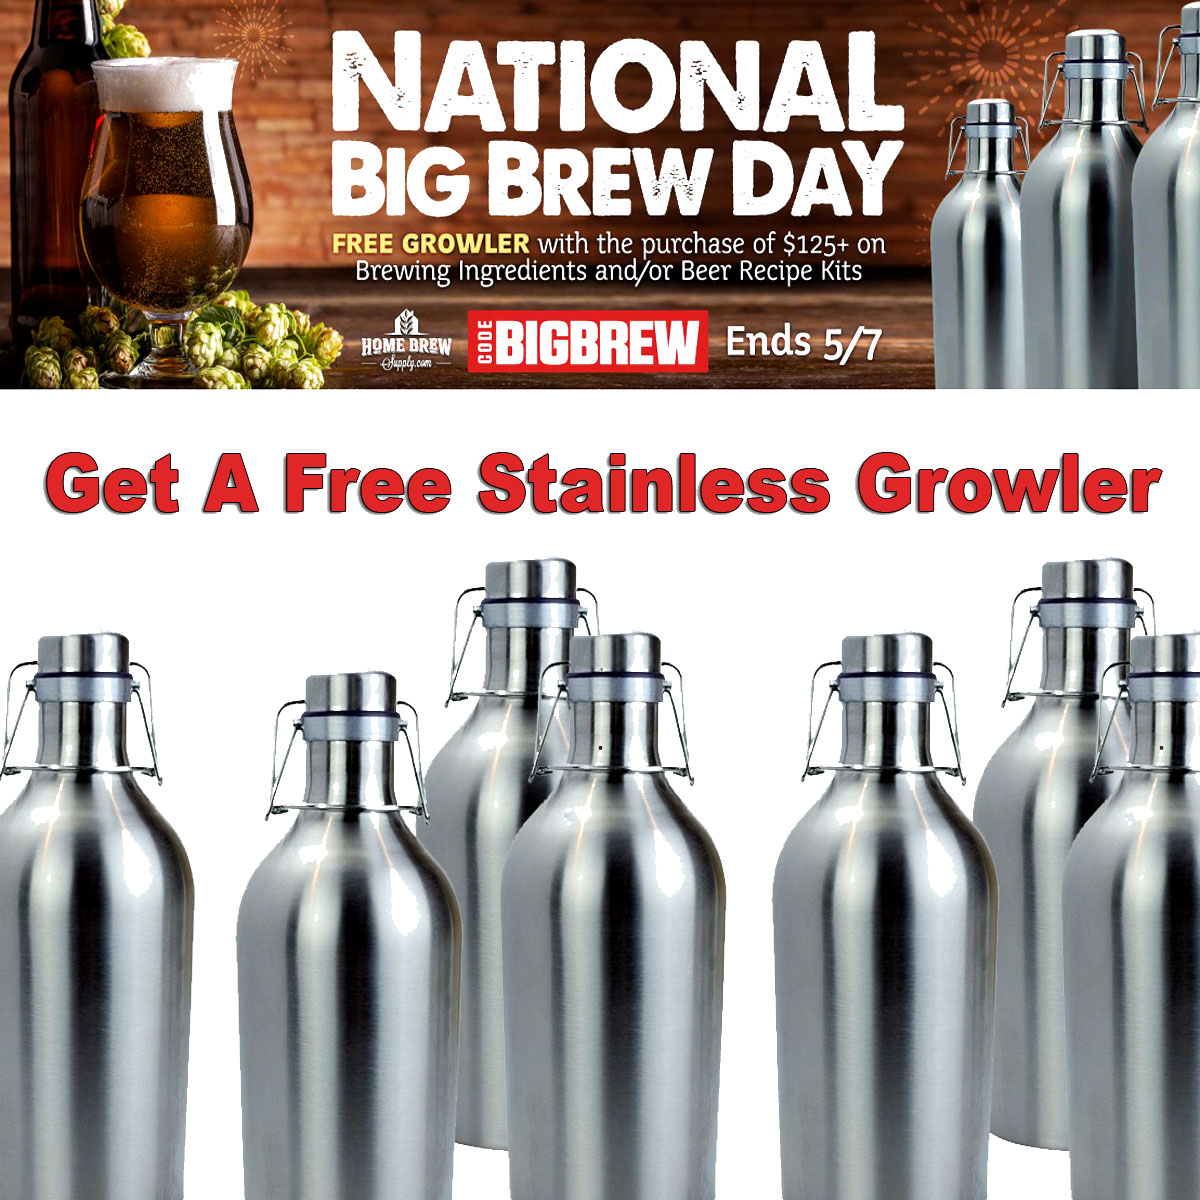 Spend $125 At Homebrew Supply and Get a Free Stainless Steel Growler Promo Codes